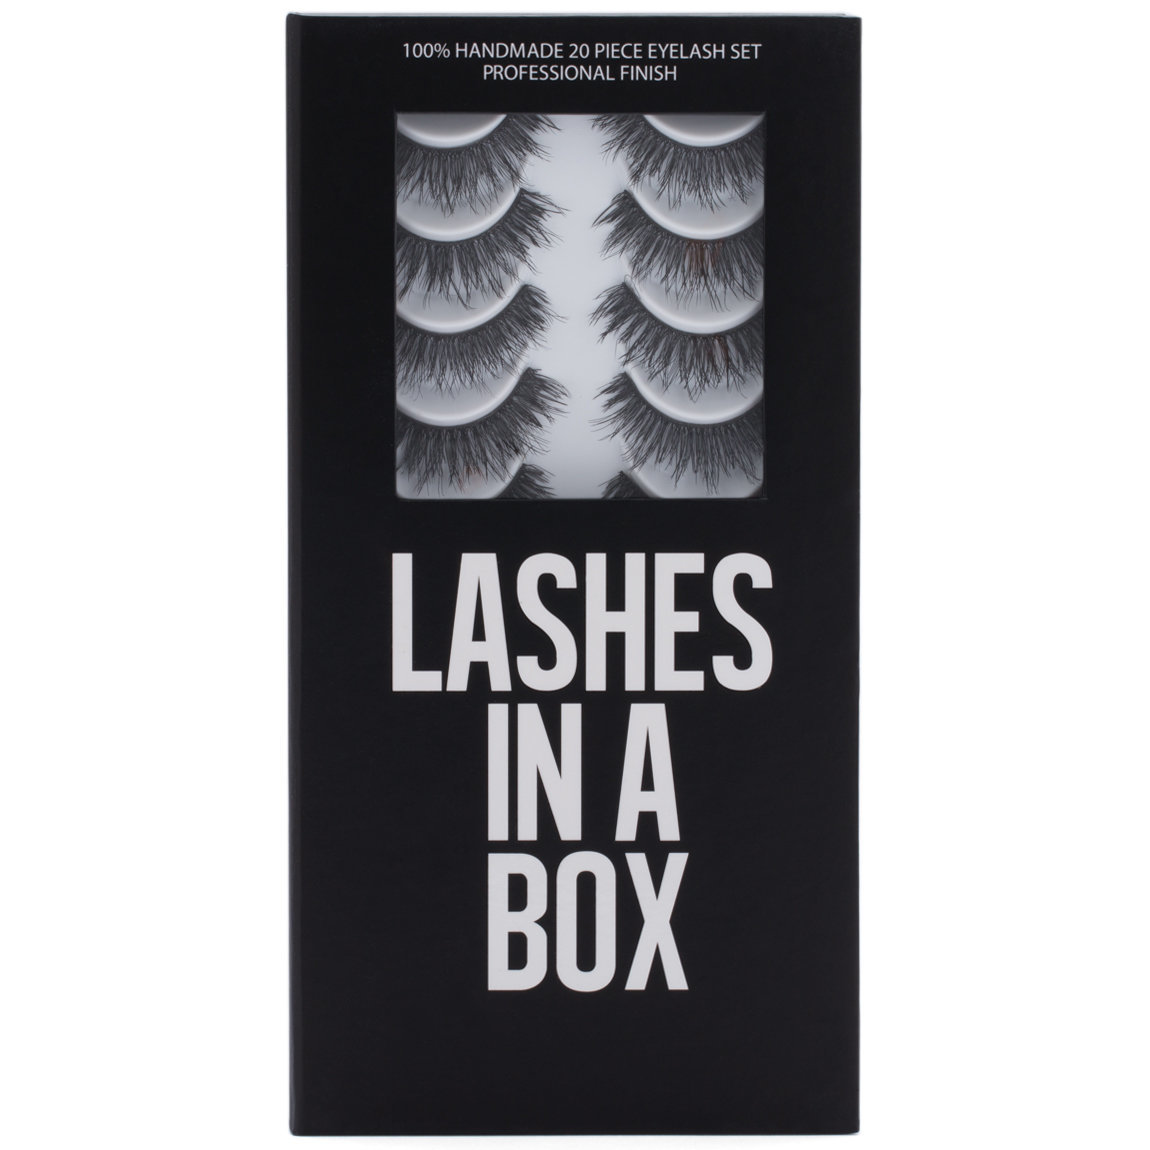 LASHES IN A BOX E1 product smear.